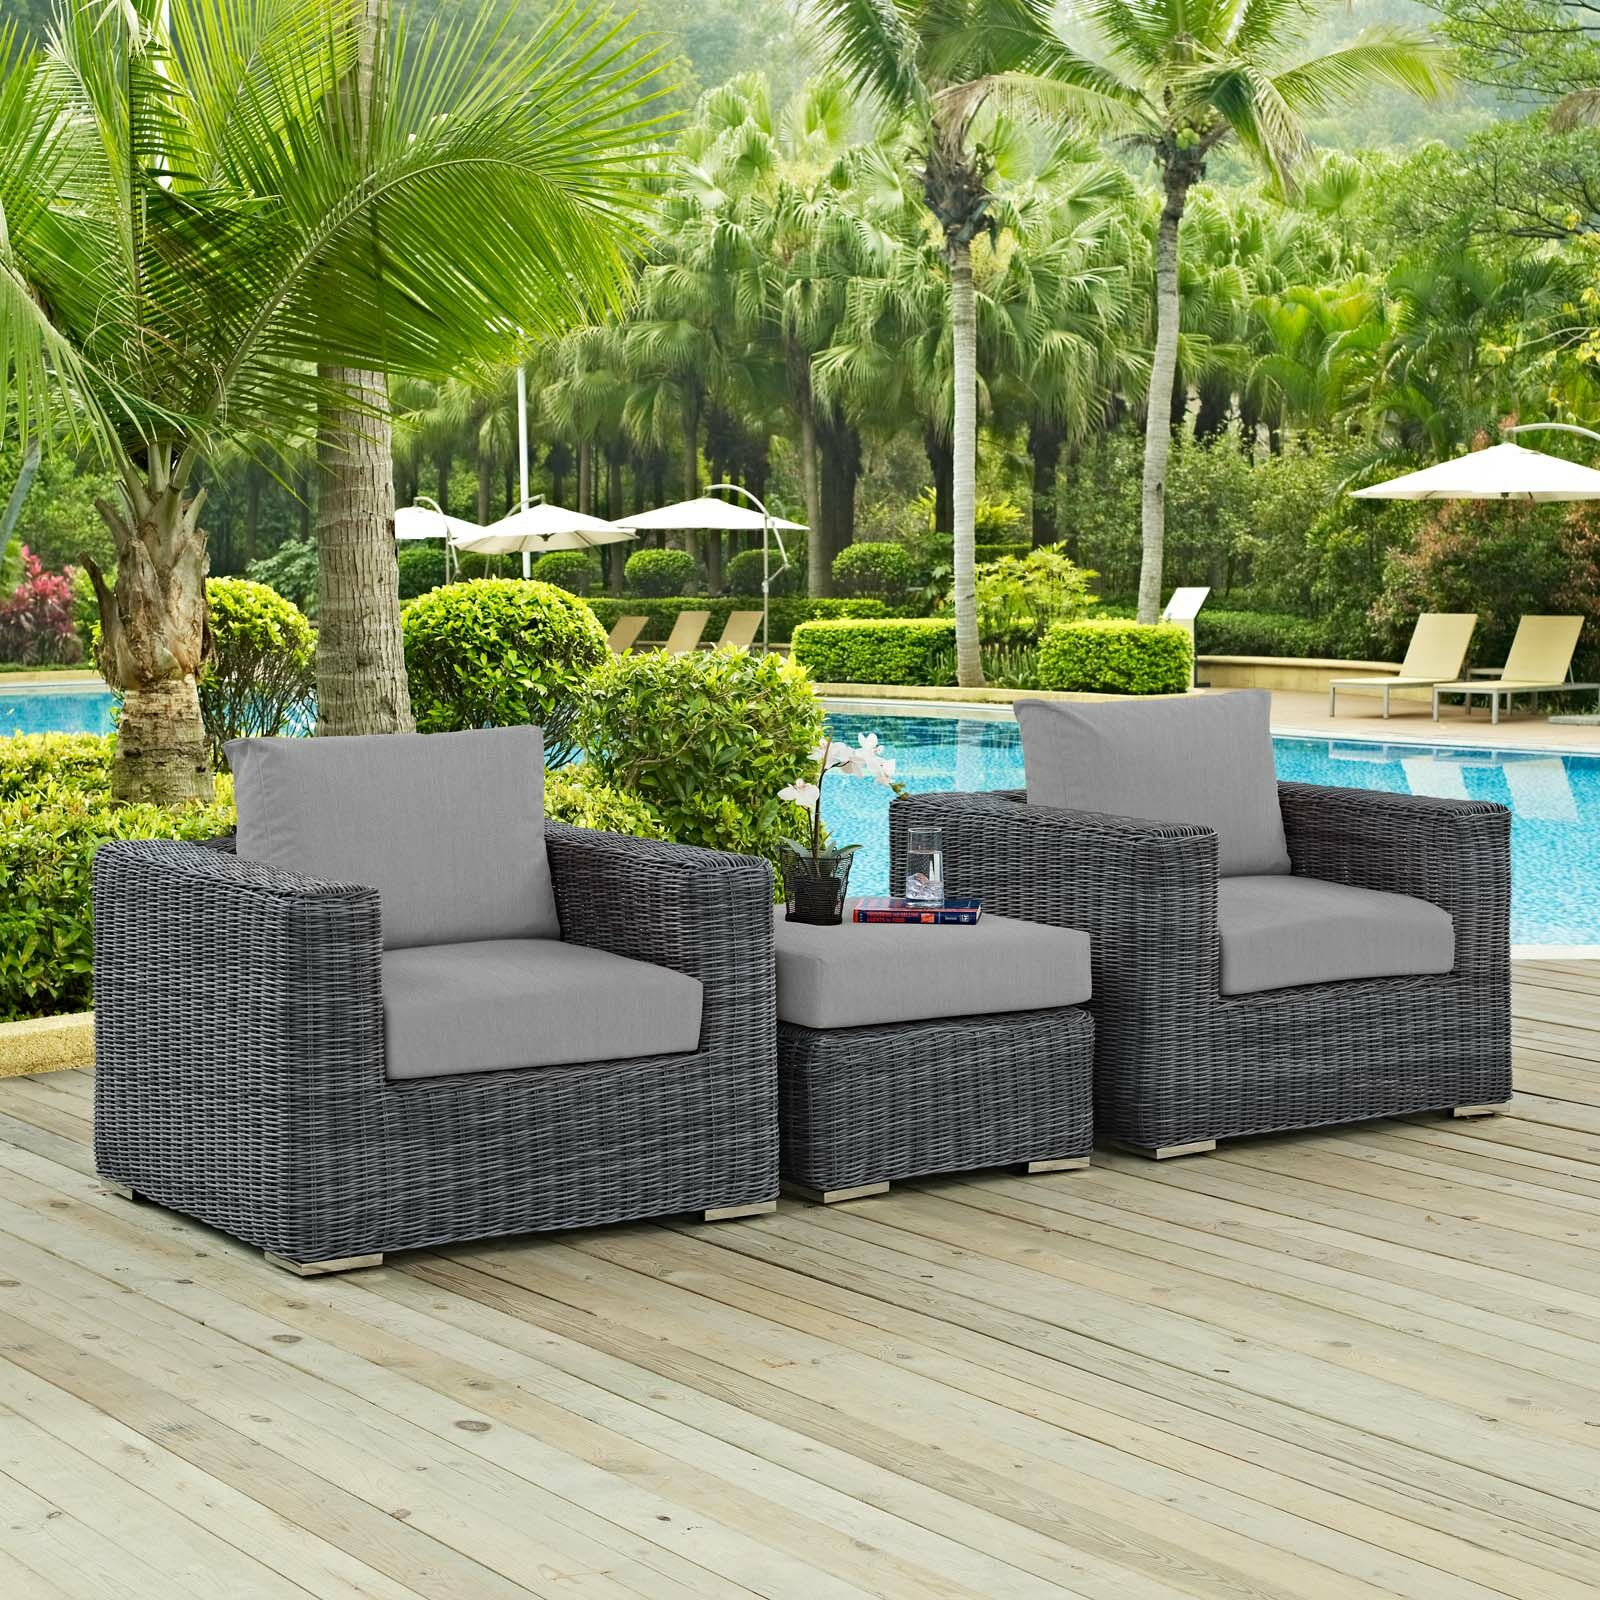 Alaia 3 Piece Rattan Sunbrella 2 Person Seating Group with Cushions Cushion Color: Gray